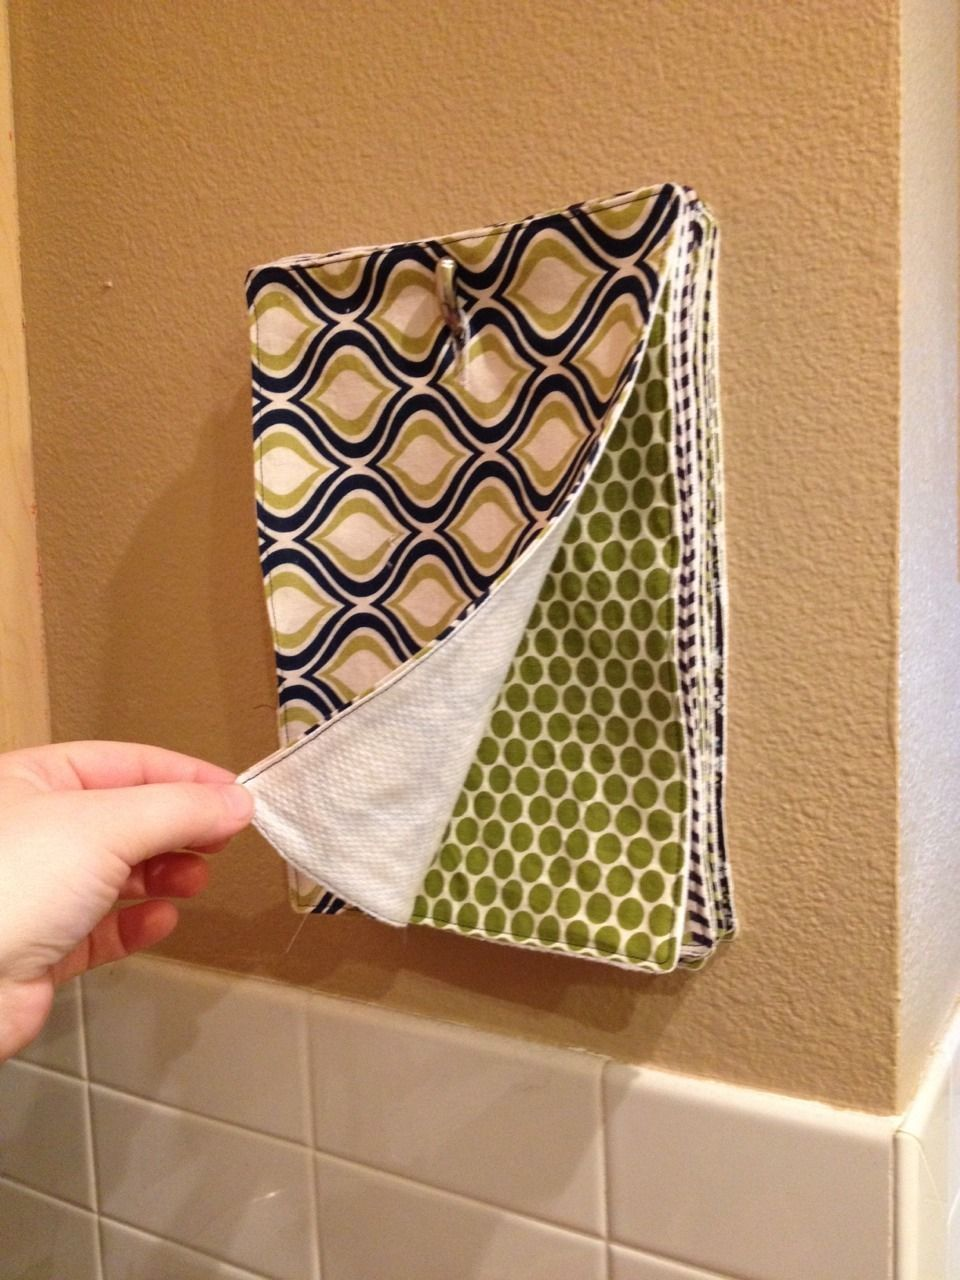 No More Paper Towels My craft goal for this holiday break was to make myself a set of multi-use kitchen towels to replace paper towels. I picked up some birds-eye cotton for the backing because it's... #kitchenorganizationdiy